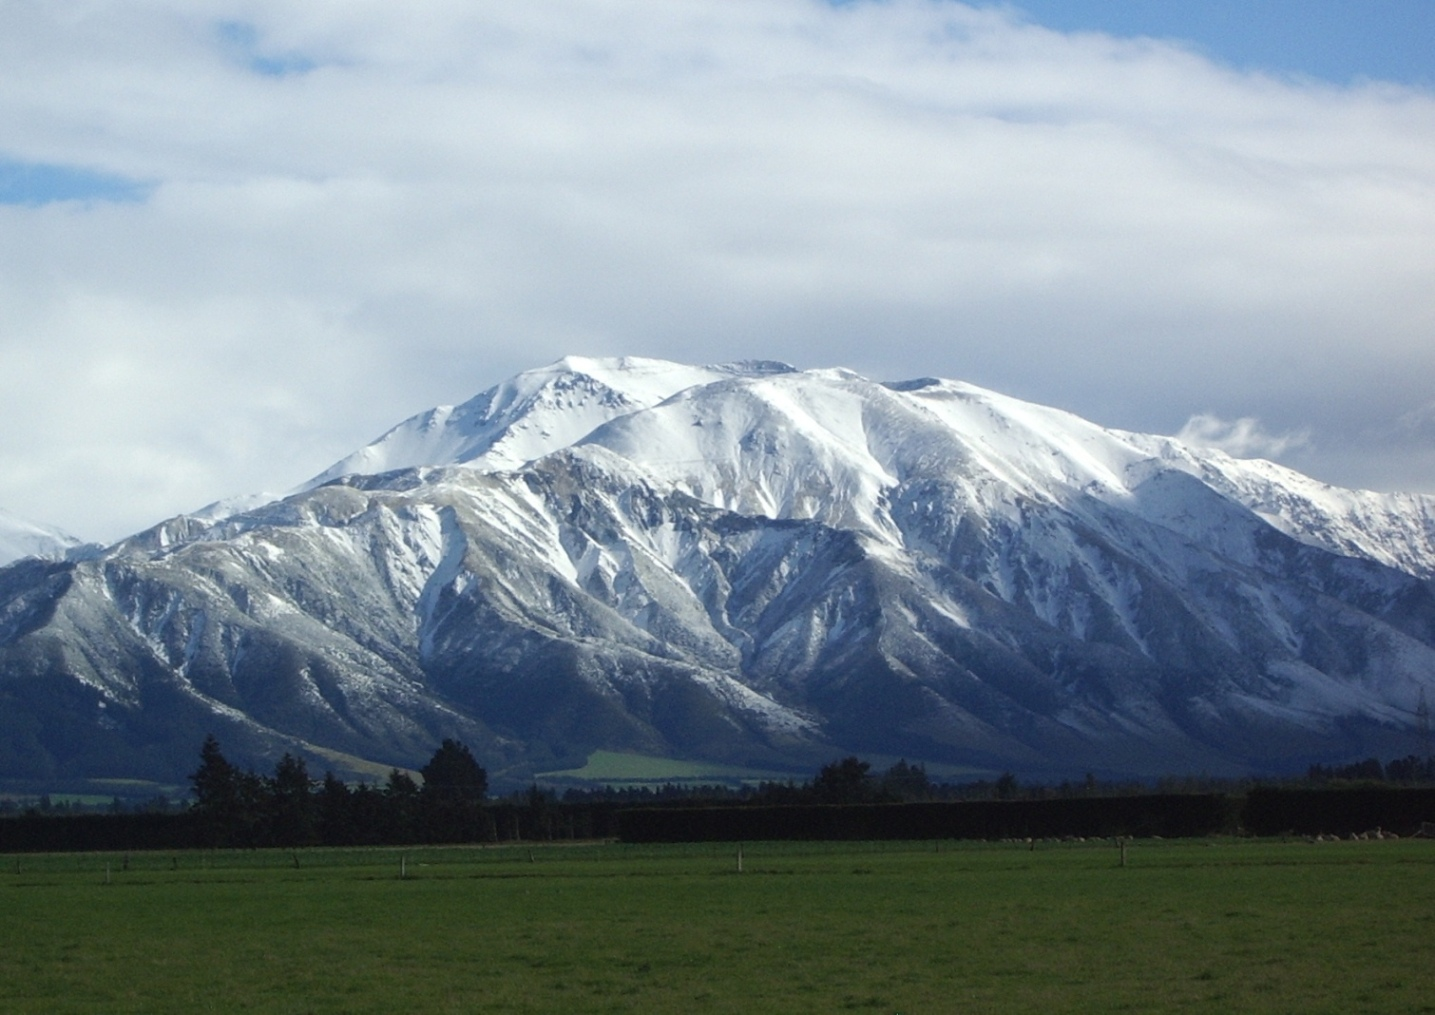 Christchurch Wallpaper: Snowing Images Snowing Hills New Zealand HD Wallpaper And